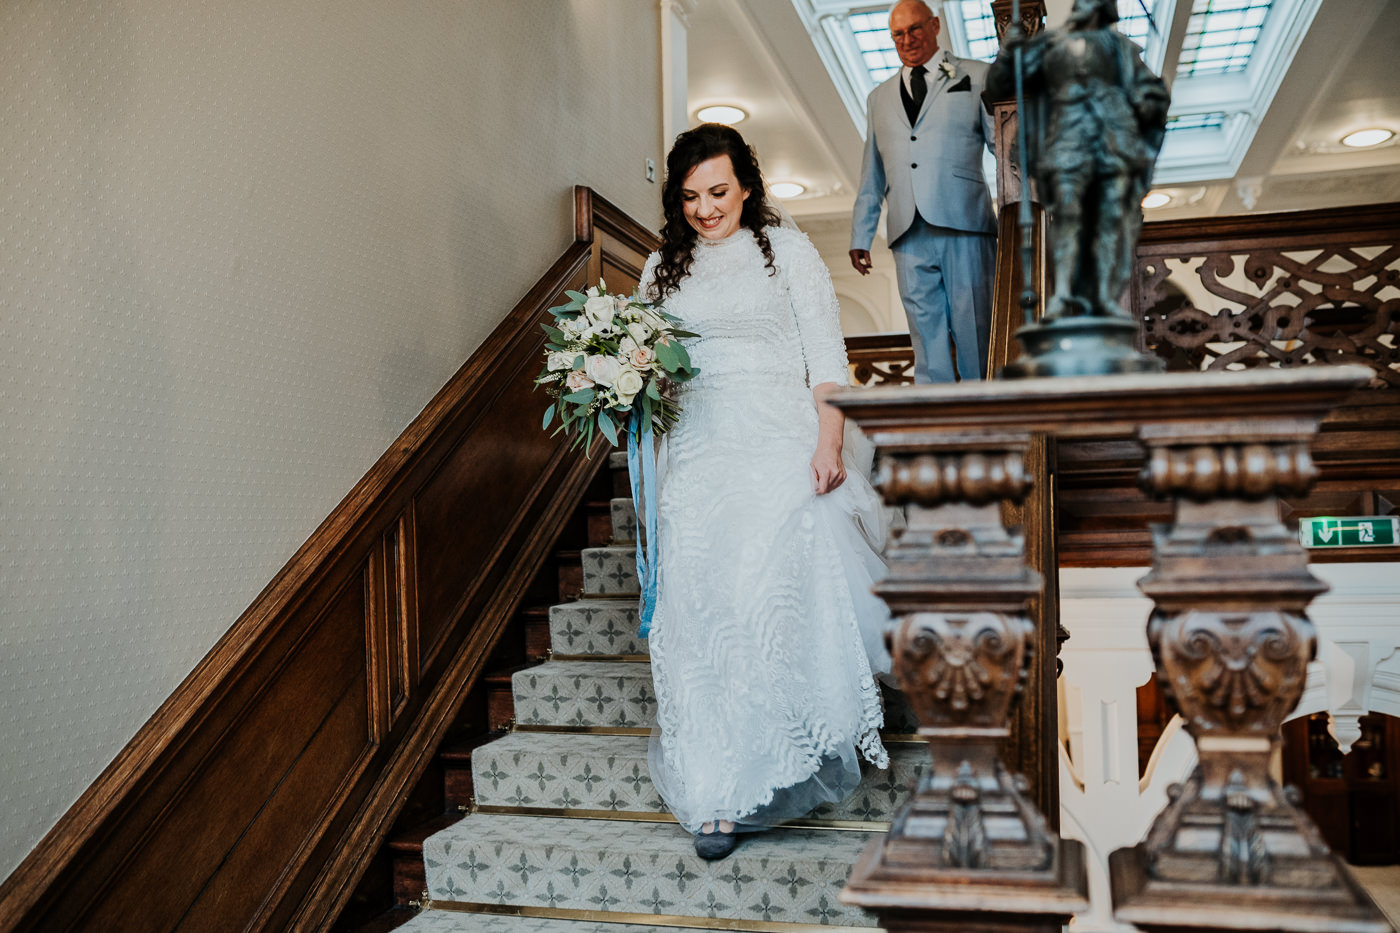 bride descending staircase with wedding bouquet at Clevedon Hall North Somerset wedding venue